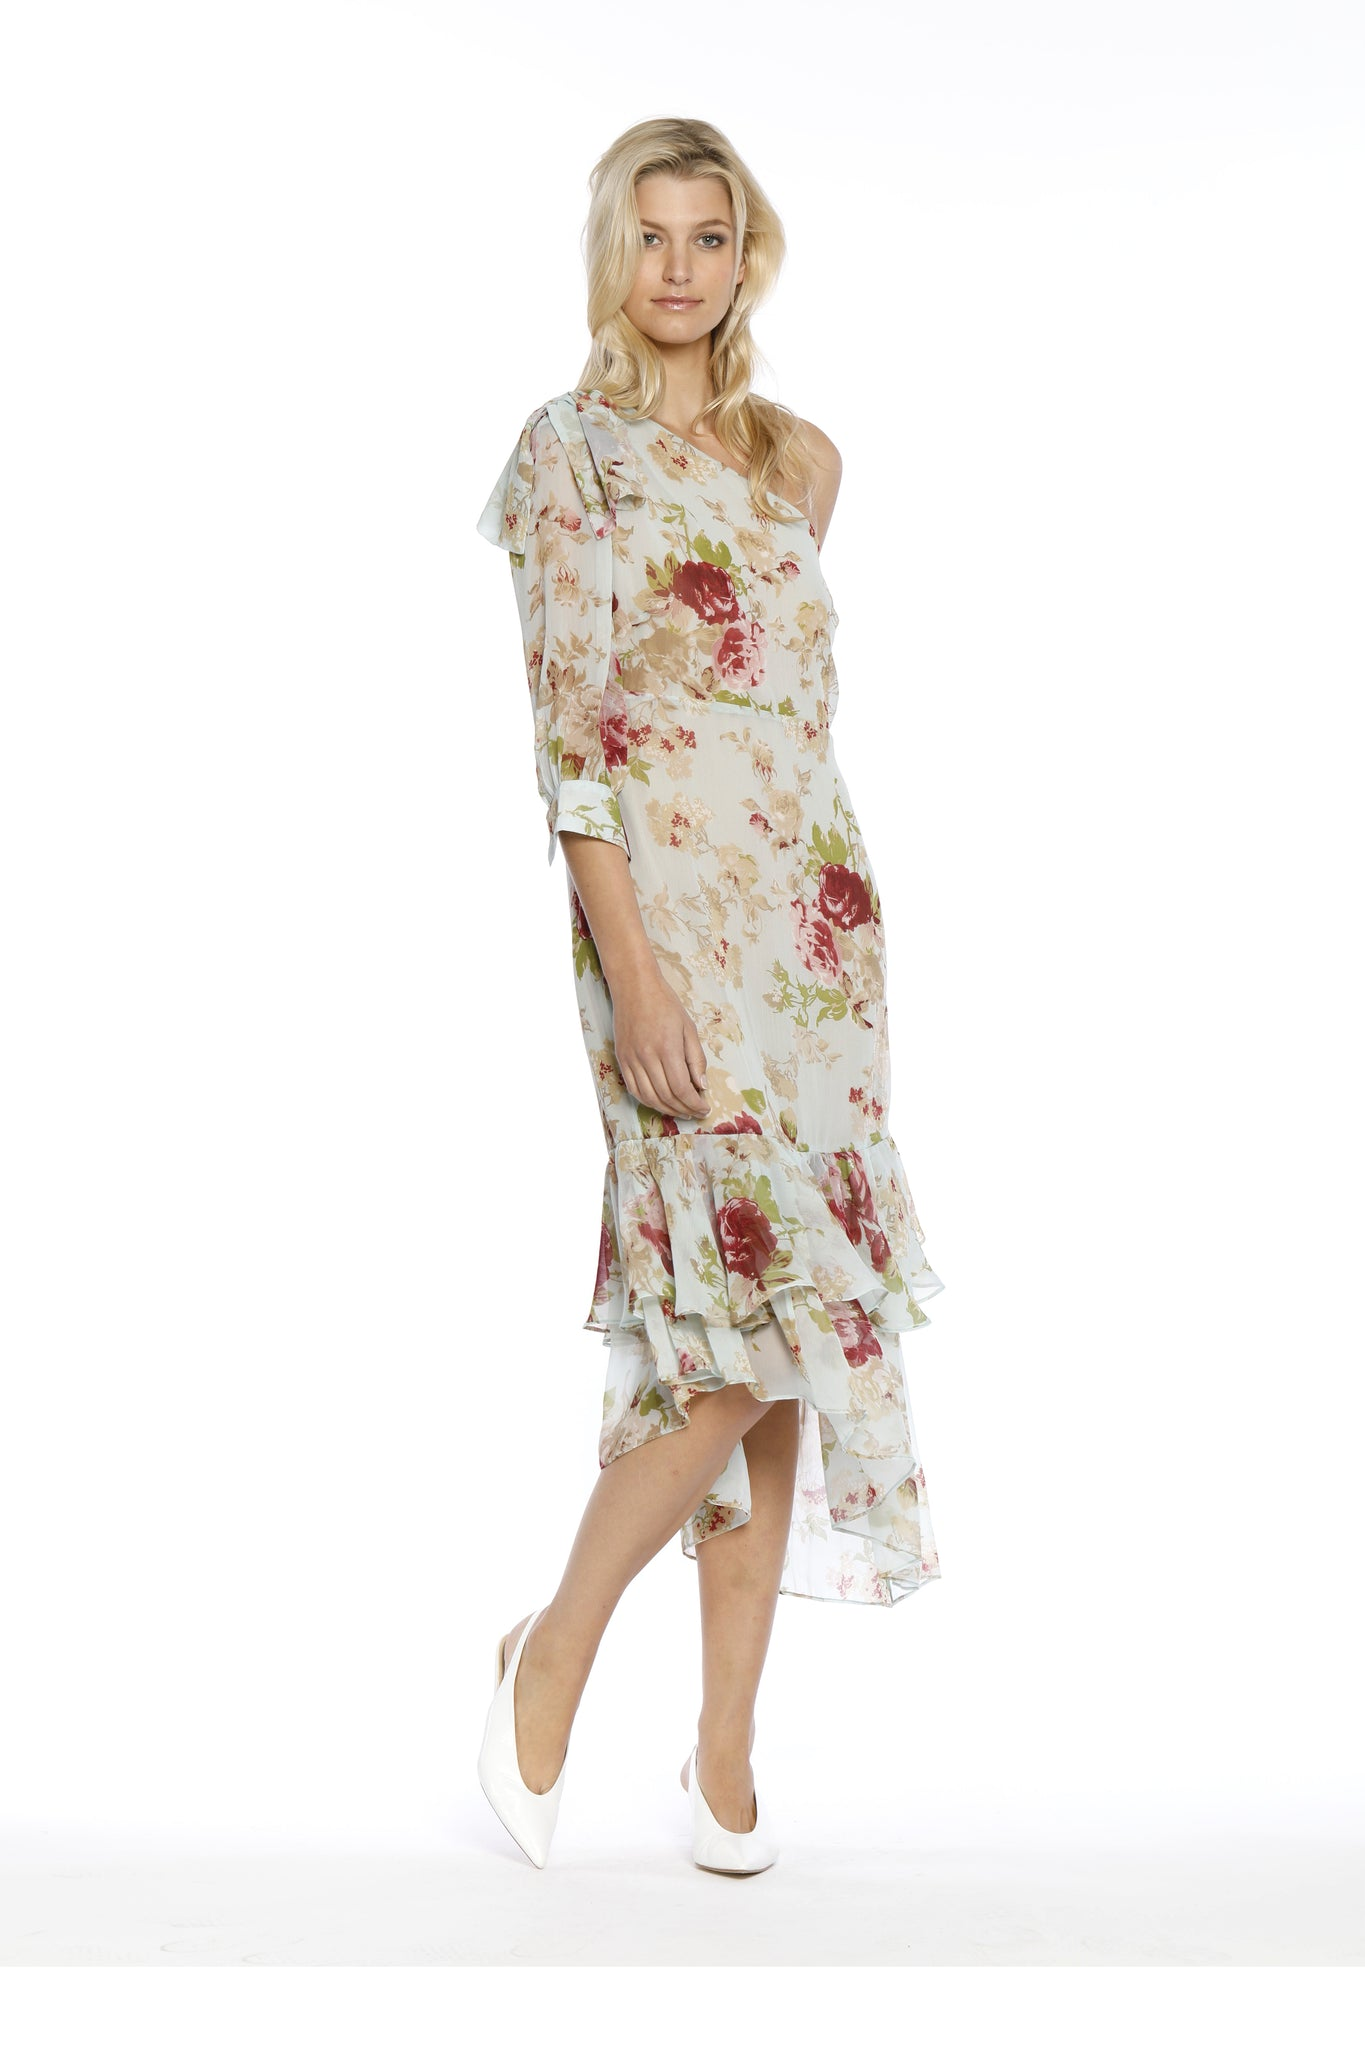 Front view (pose) of Sophina Dress, one-shouldered floral top with spring bloom motif and layered frills. Shell and lining are 100% polyester and machine-washable.